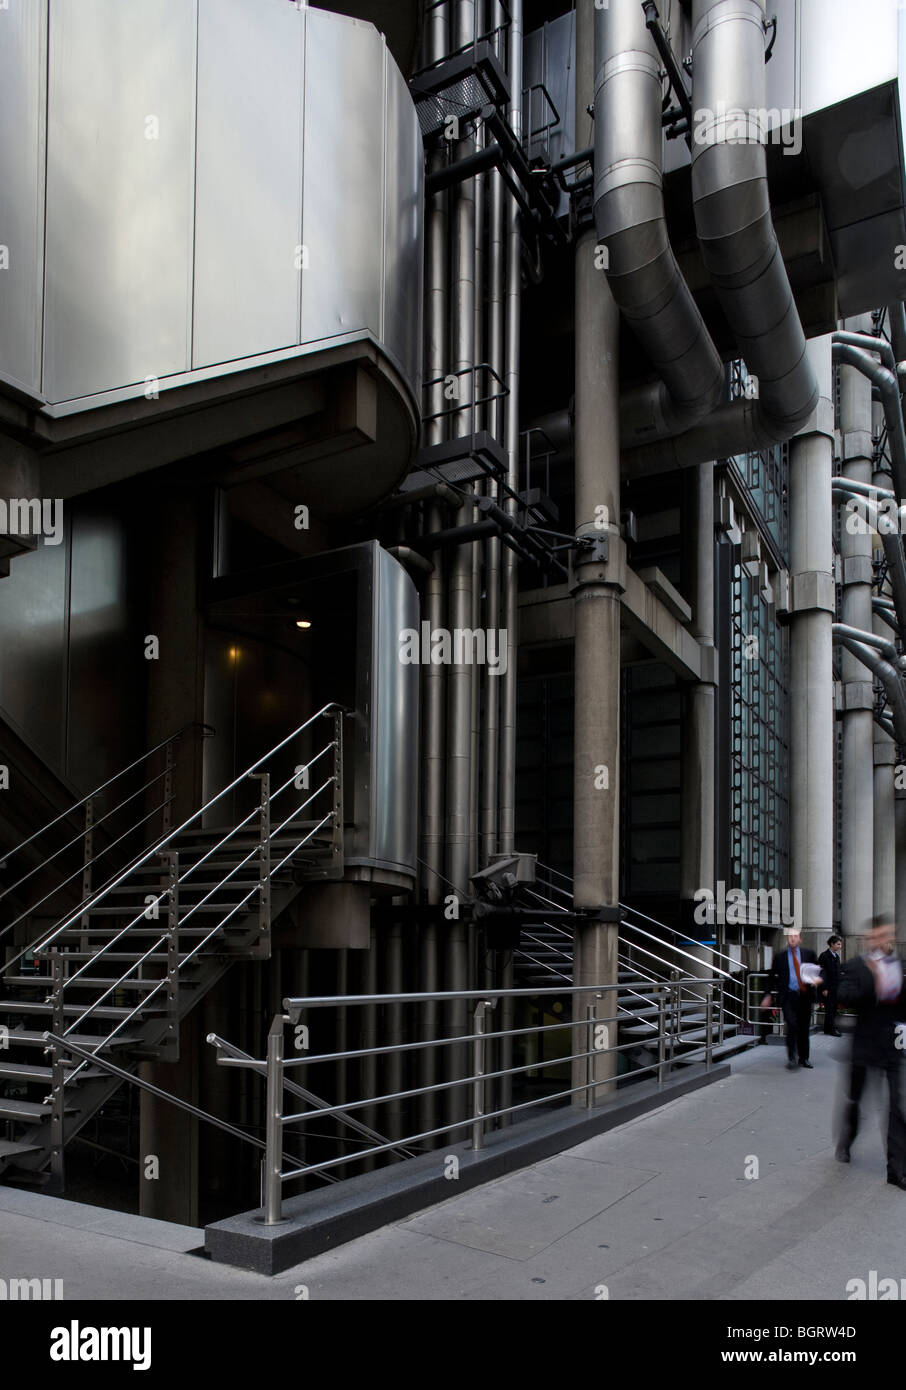 Lloyd's of London, designed by Richard Rogers Partnership architects. I've accentuated the muscularity of - Stock Image